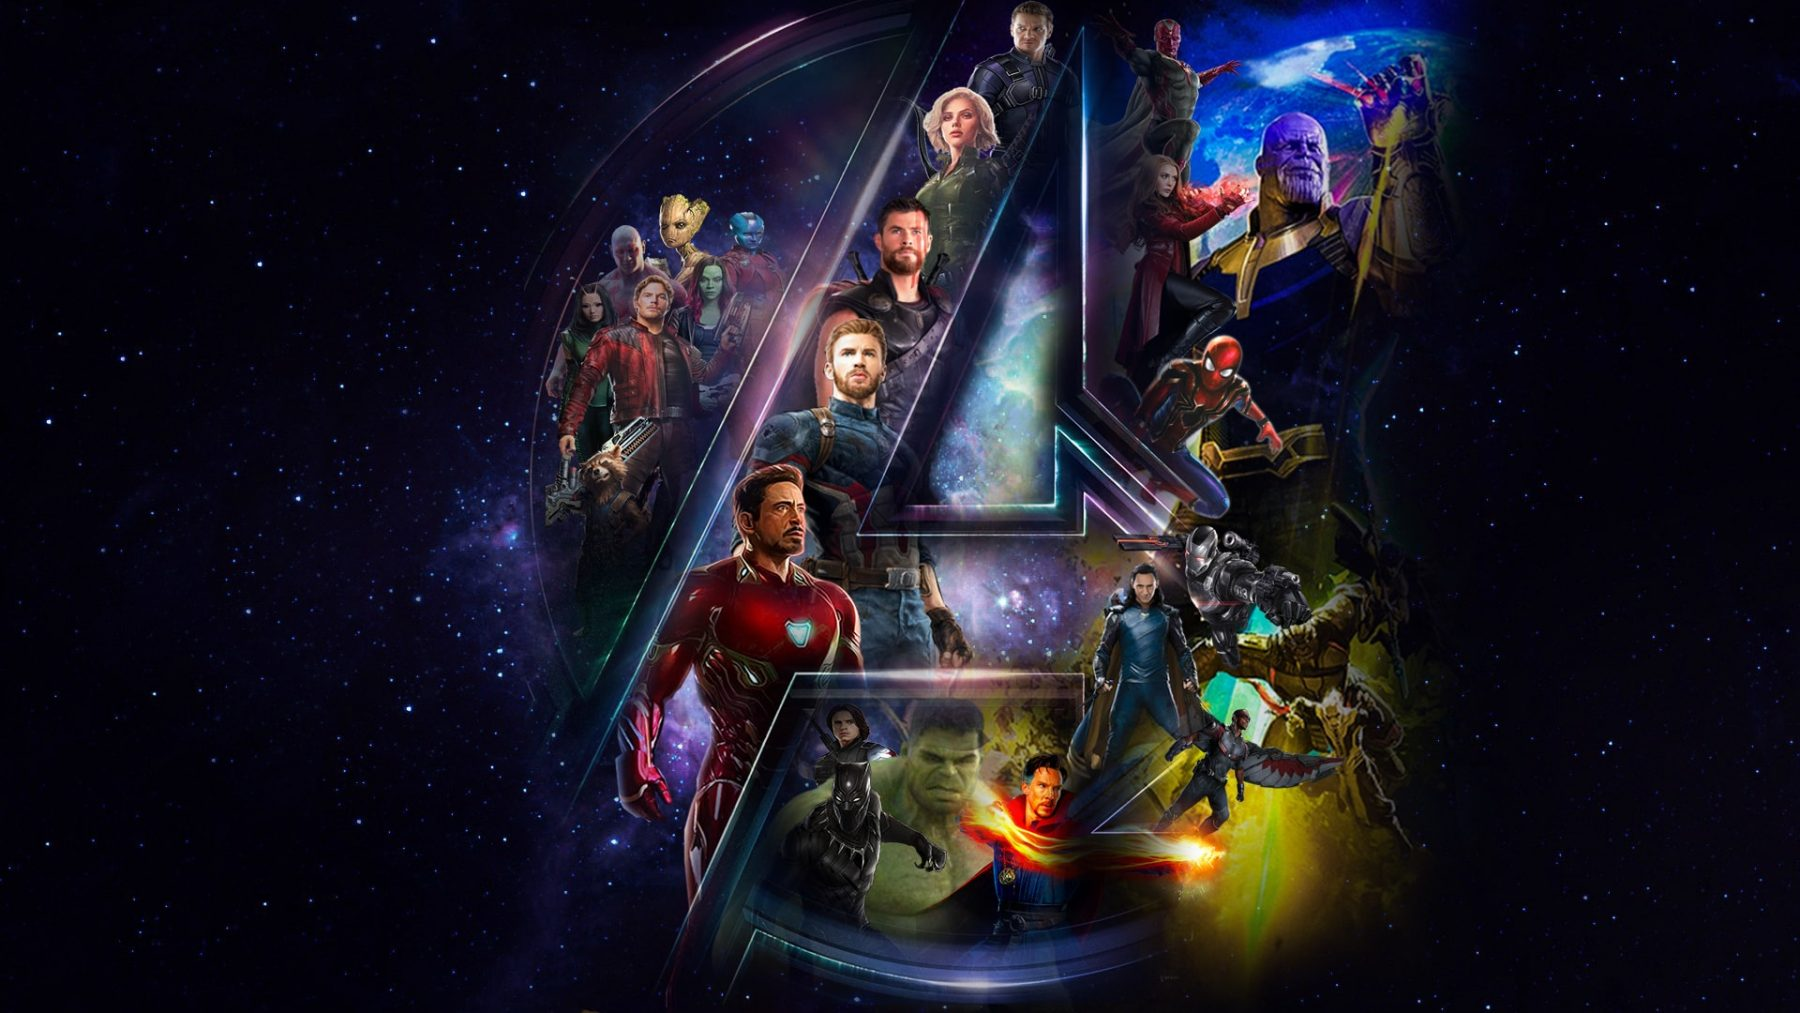 Avengers Infinity War Hd Wallpapers 7wallpapers Net